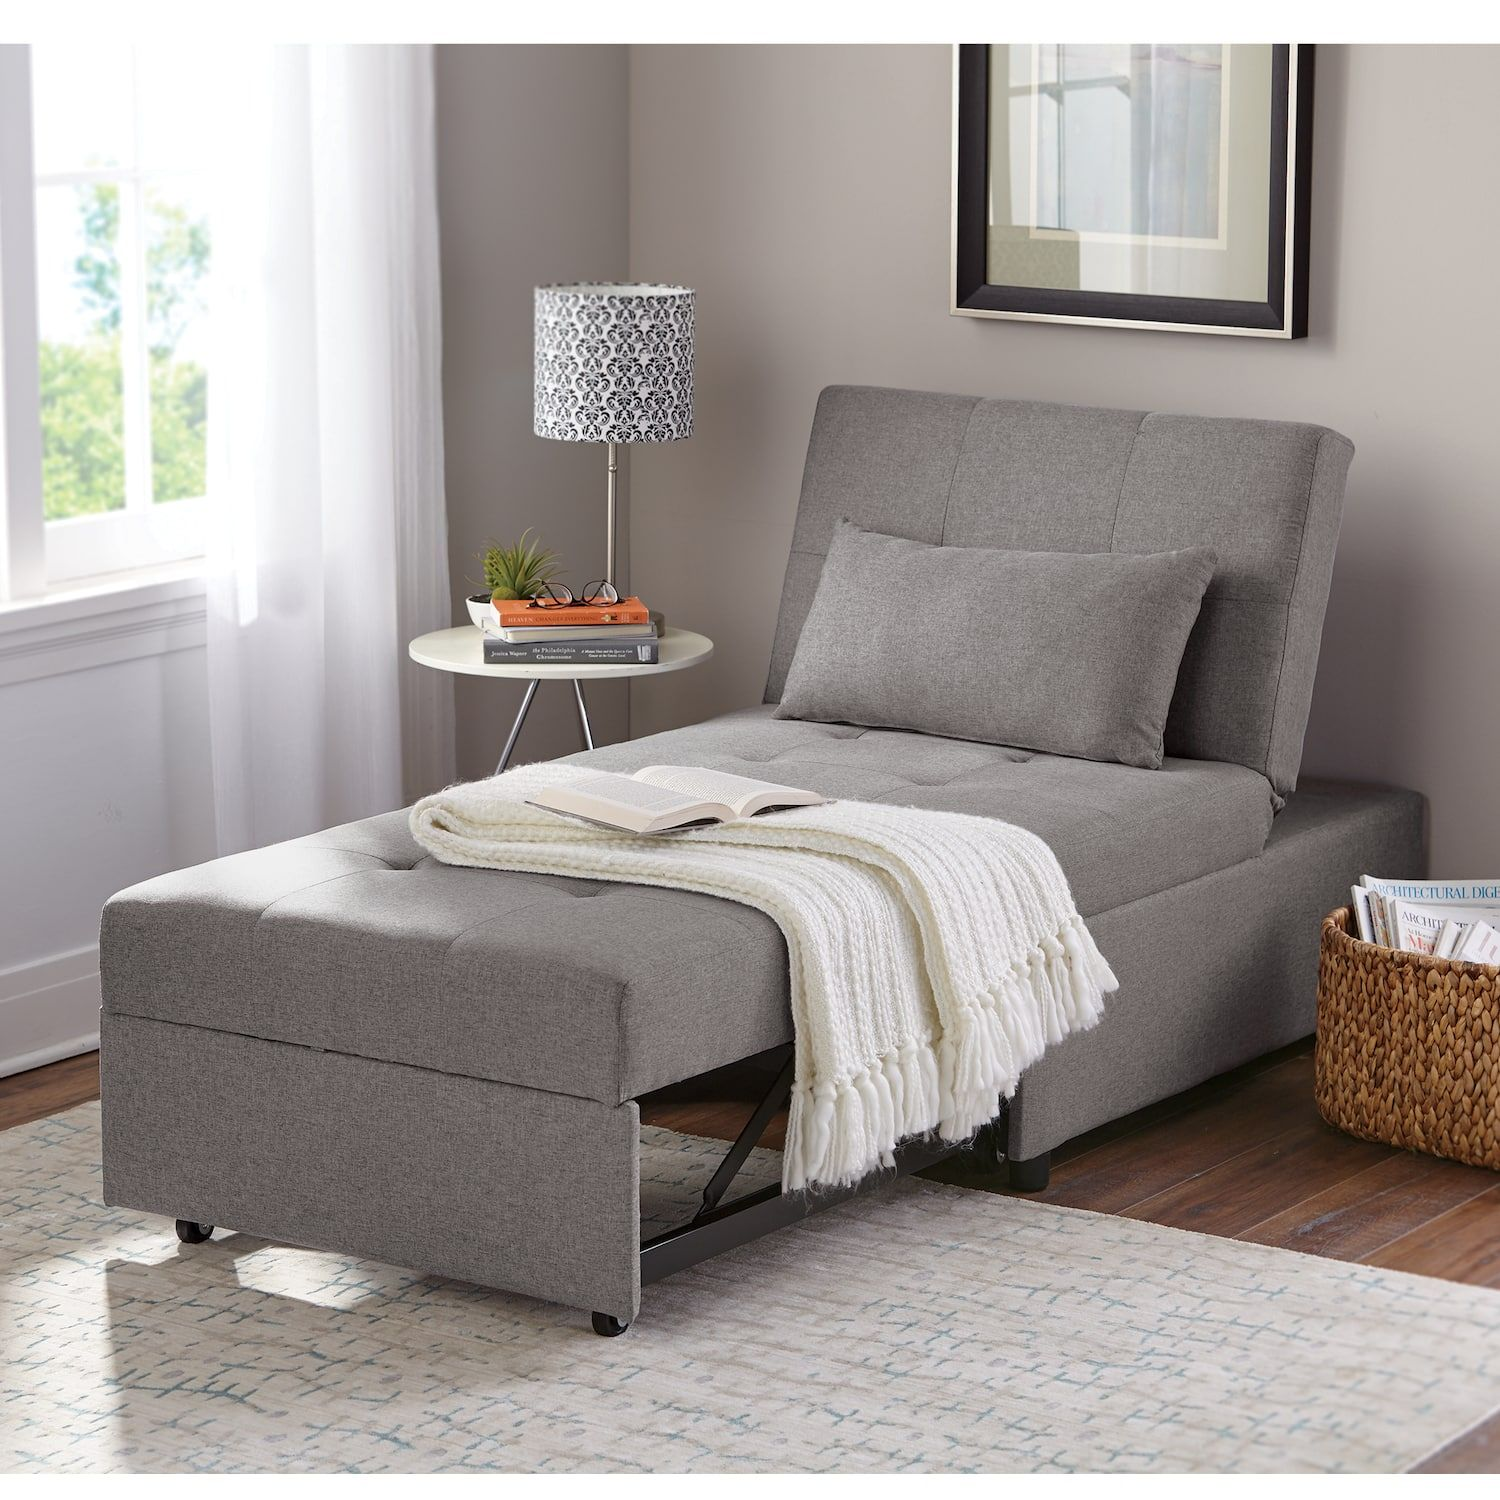 Cali Convertible Chair in 2020 Single sofa bed